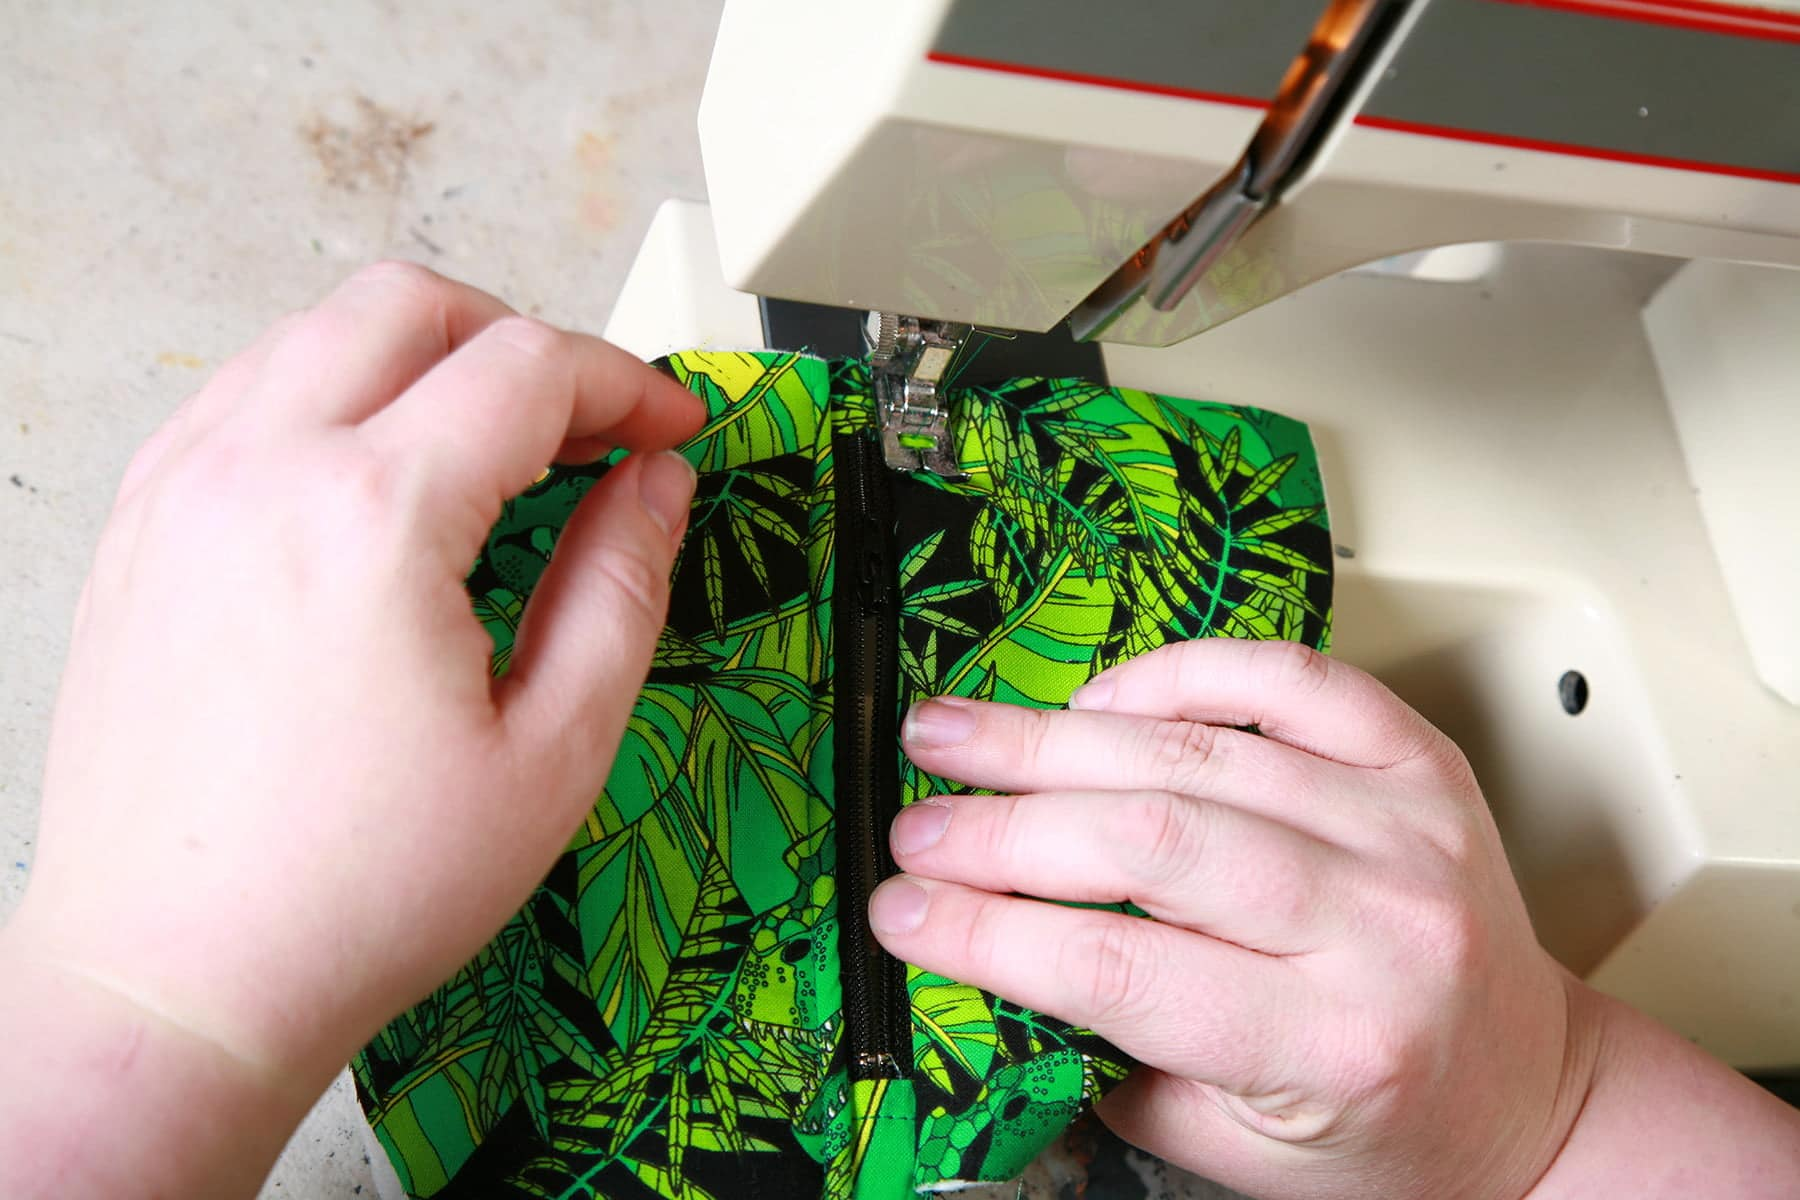 Two hands are shown using a sewing machine to sew a black zipper onto a green printed fabric.